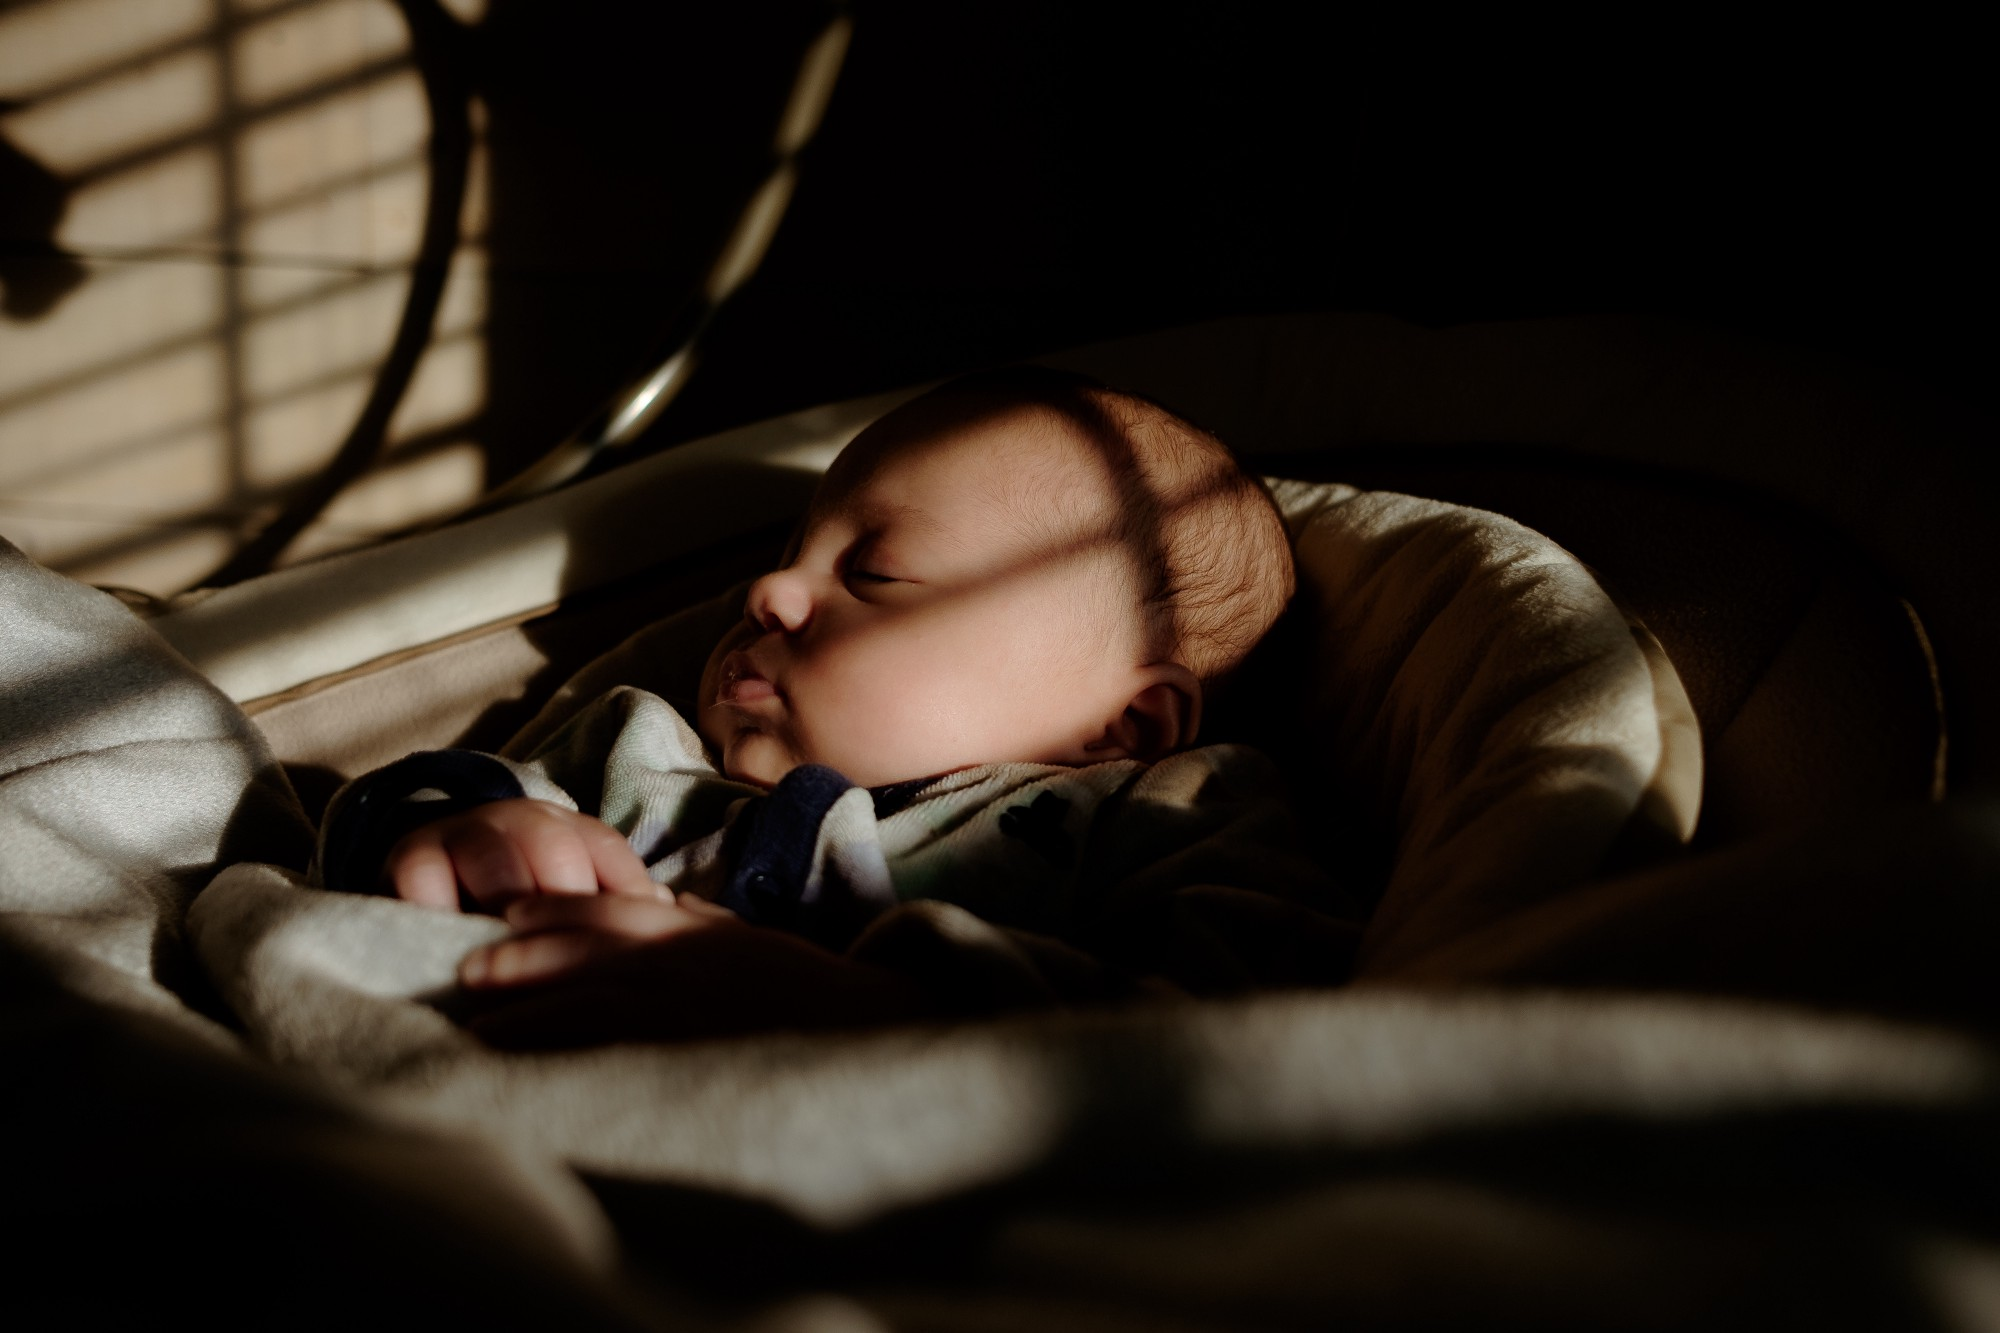 An infant sleeps in the shadows.